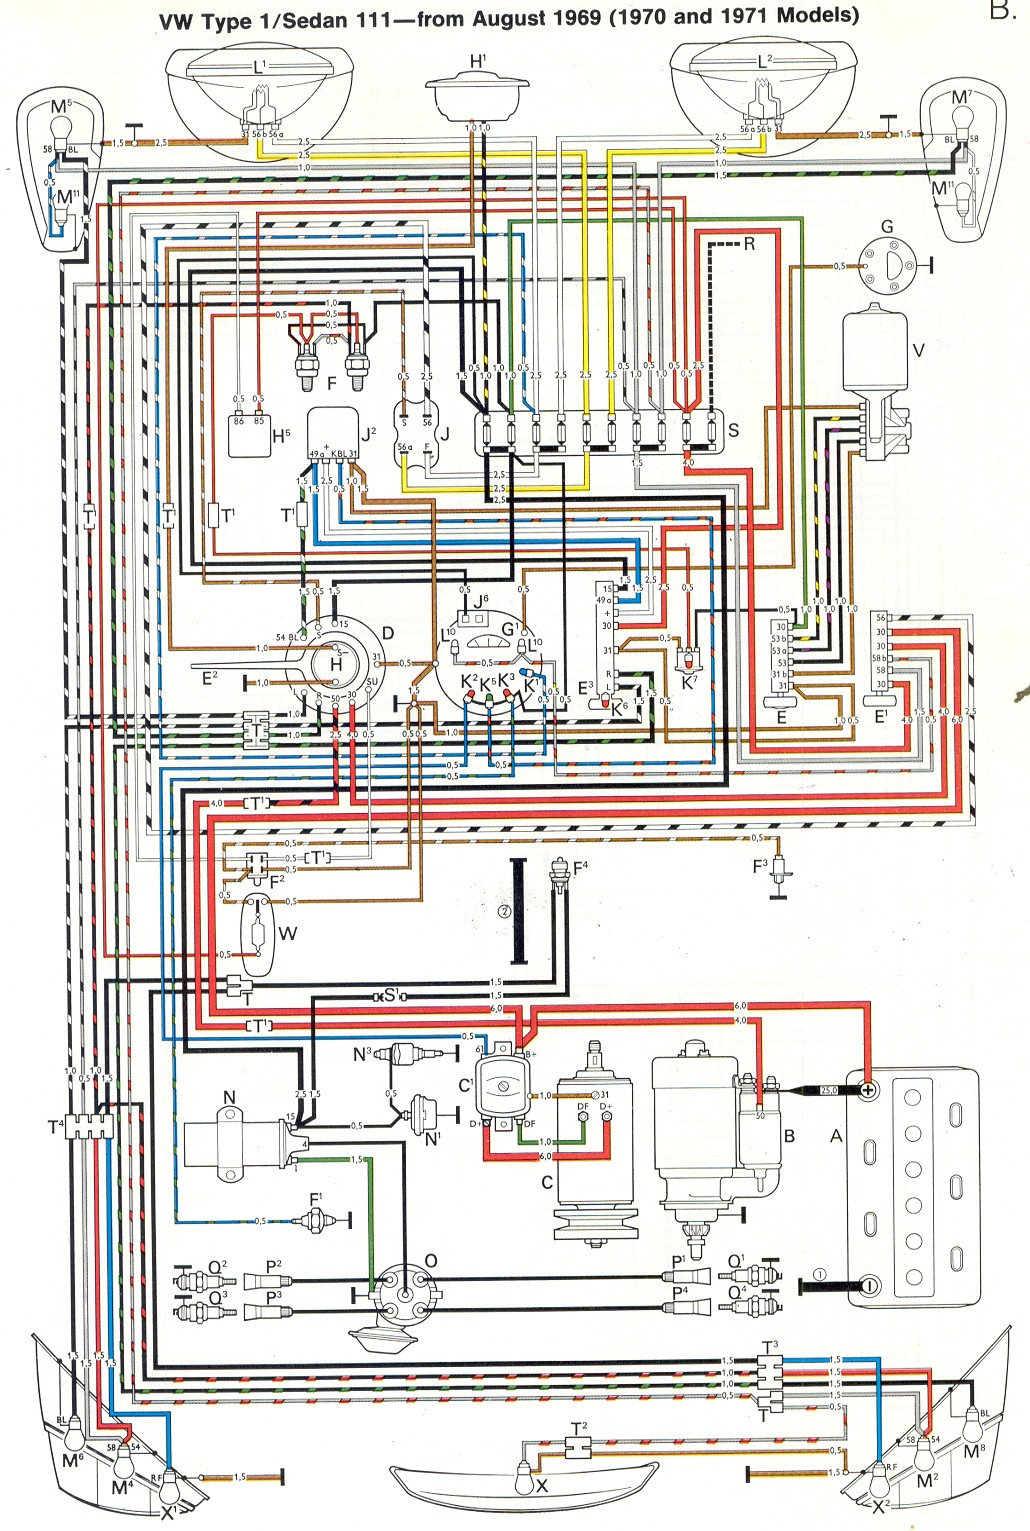 hight resolution of 70 vw wiring diagram free picture schematic wiring diagrams scematic 1976 vw beetle wiring diagram 70 vw wiring diagram